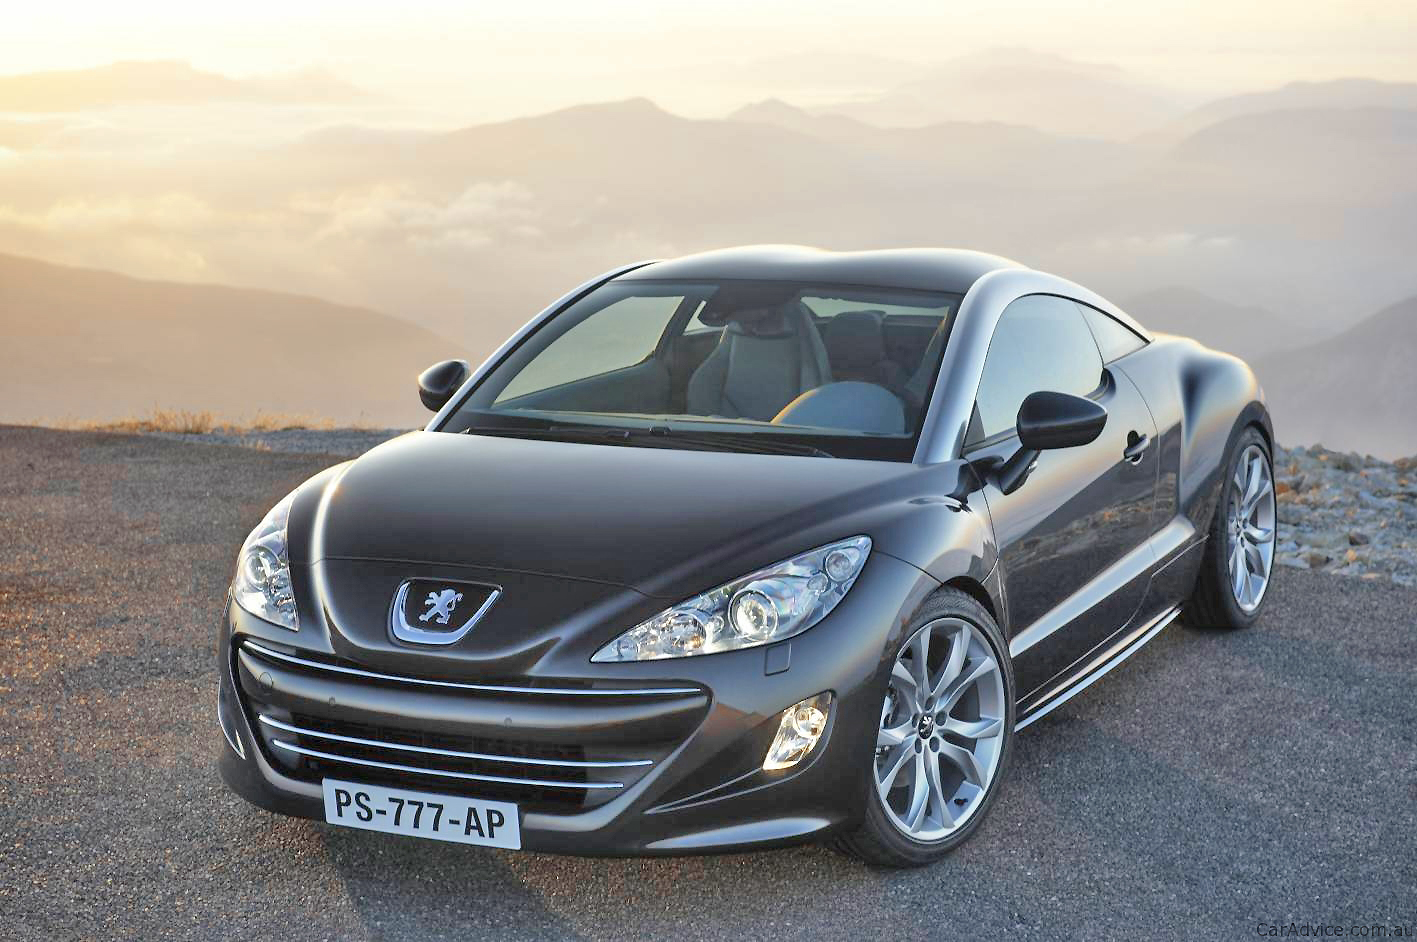 The distinctive double-bubble roof of the Peugeot RCZ is one of the features that won it the title of Most Beautiful Car of 2009.